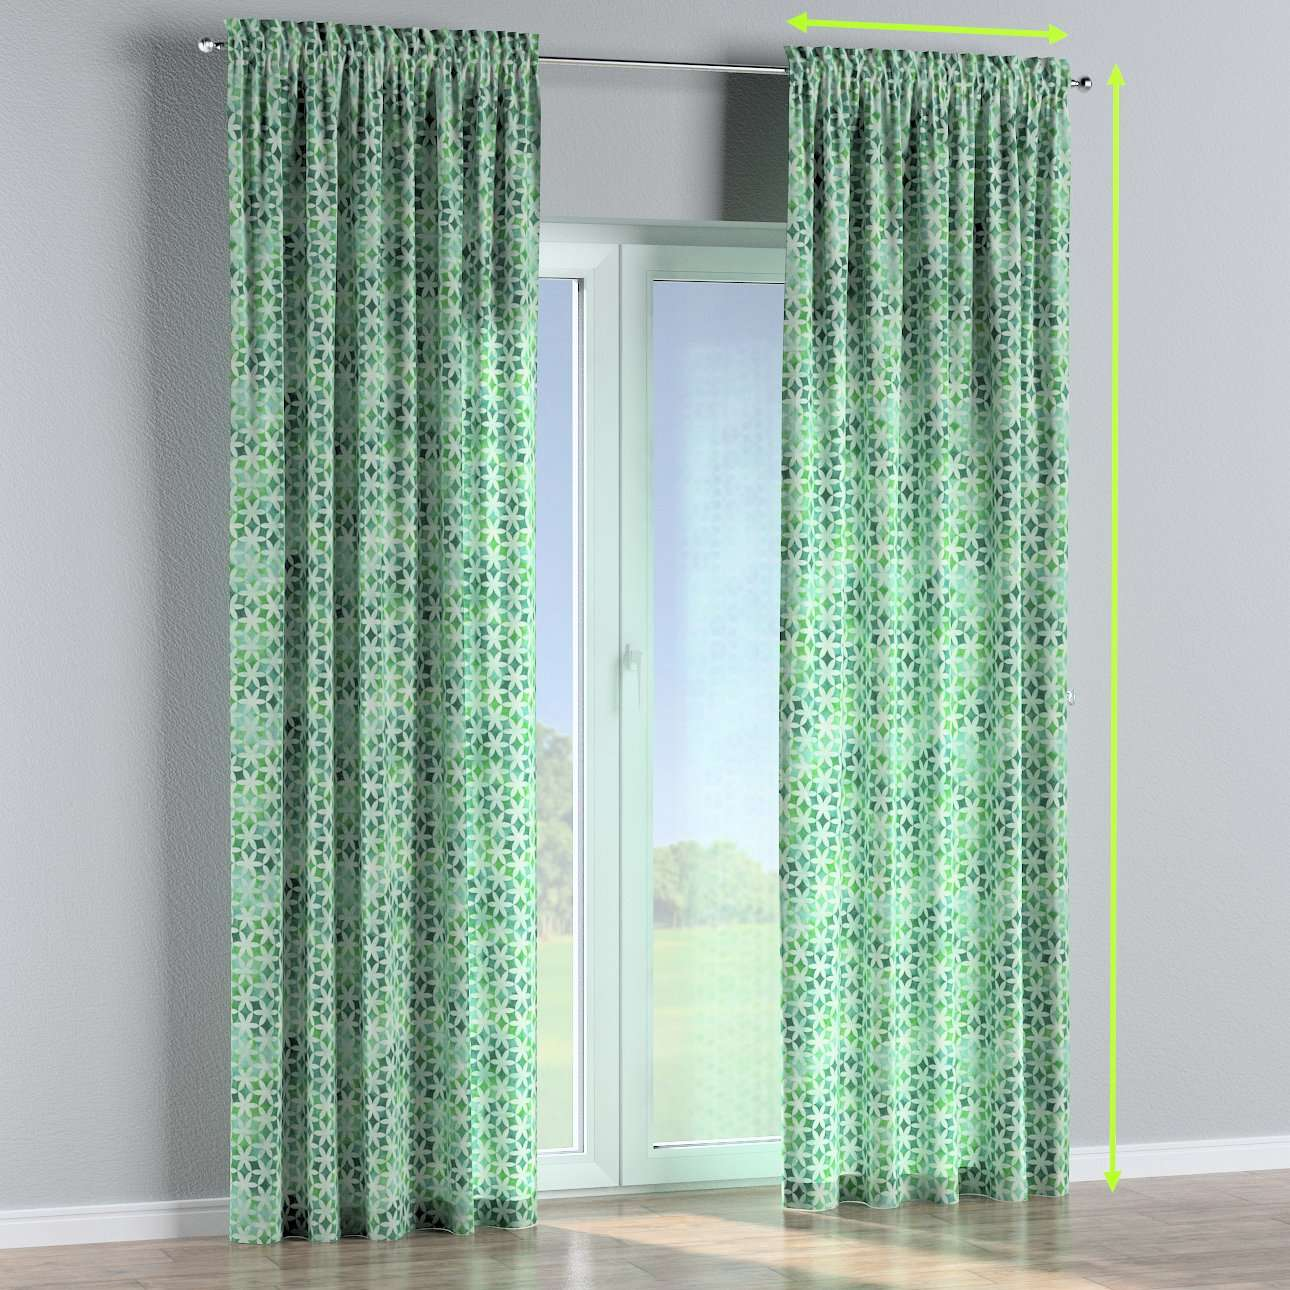 Slot and frill lined curtains in collection Urban Jungle, fabric: 141-65